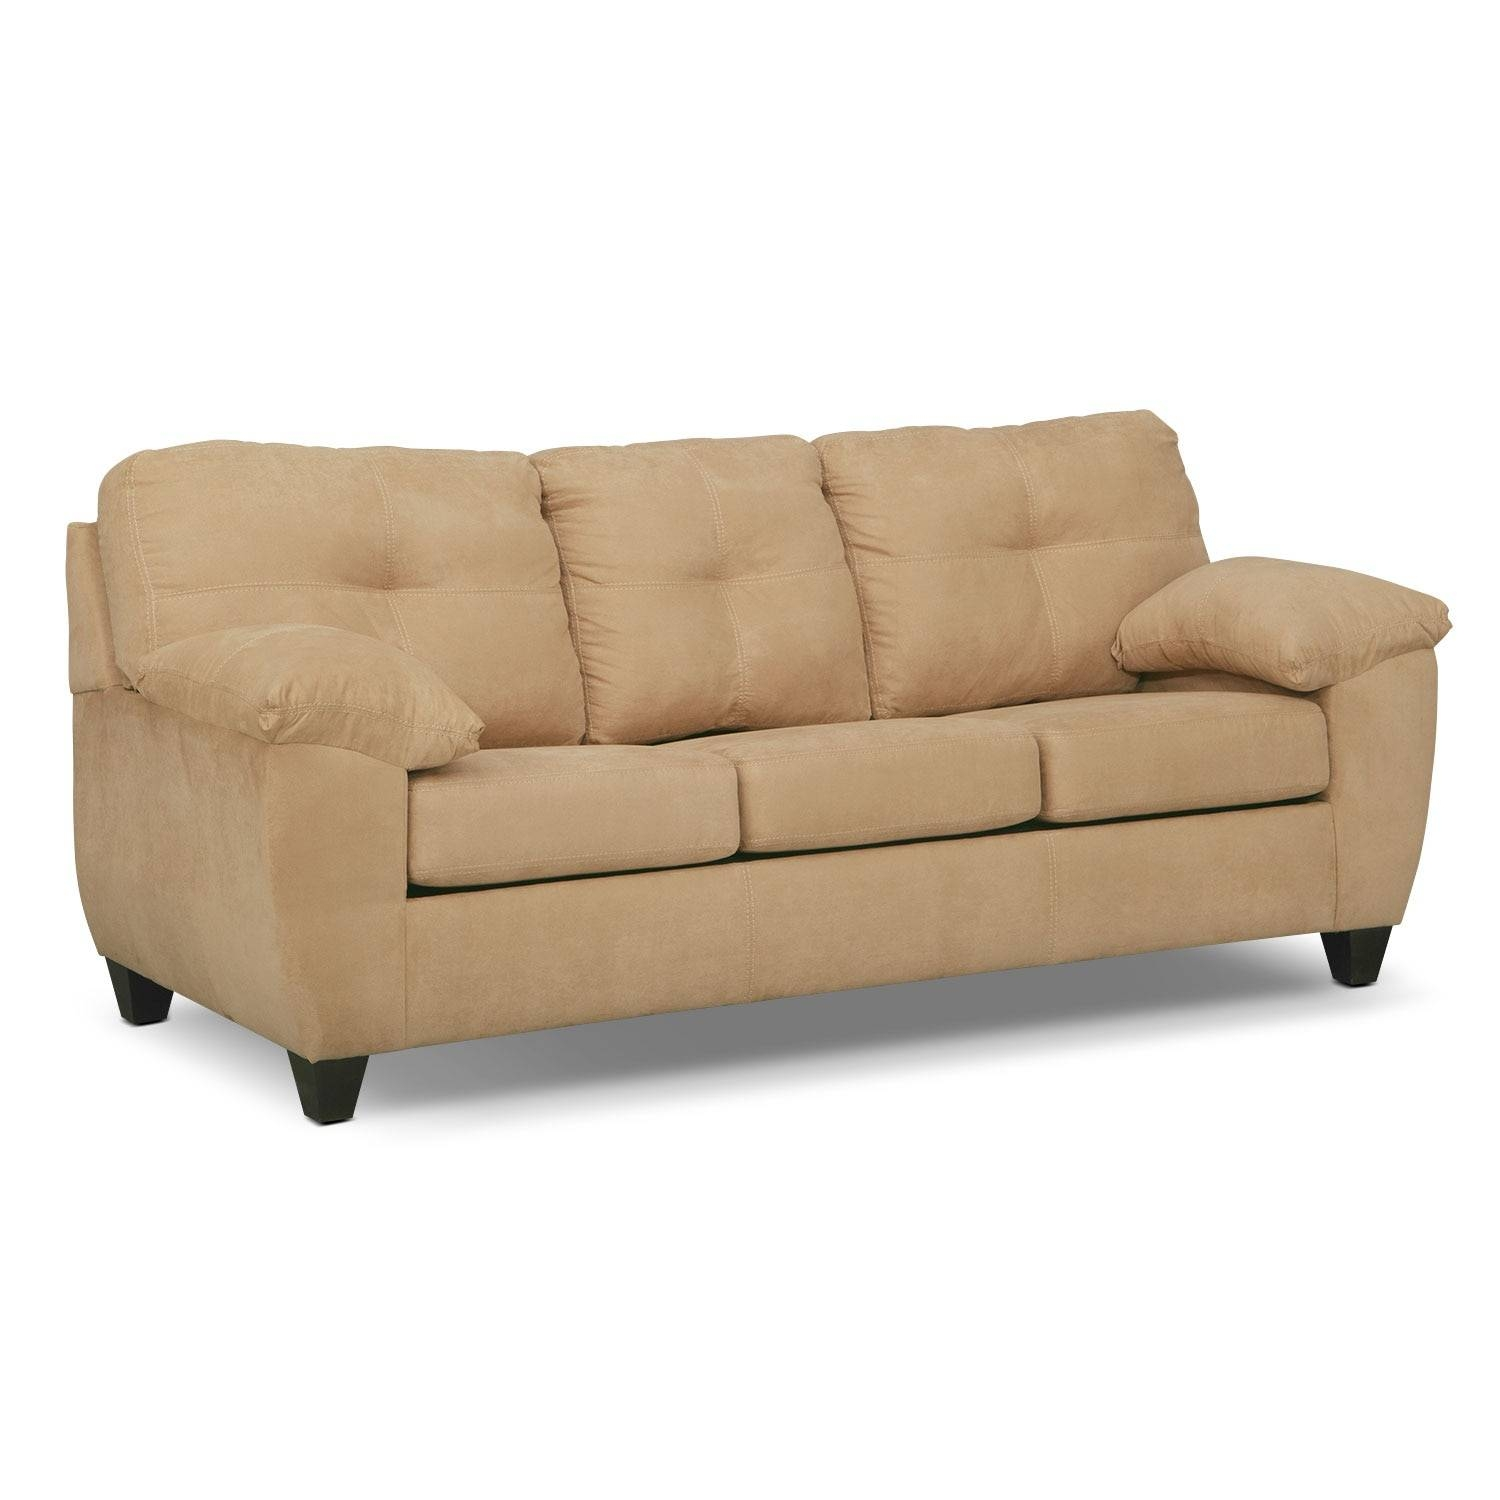 Sleeper Sofas | Value City Furniture | Value City Furniture regarding Value City Sofas (Image 16 of 25)